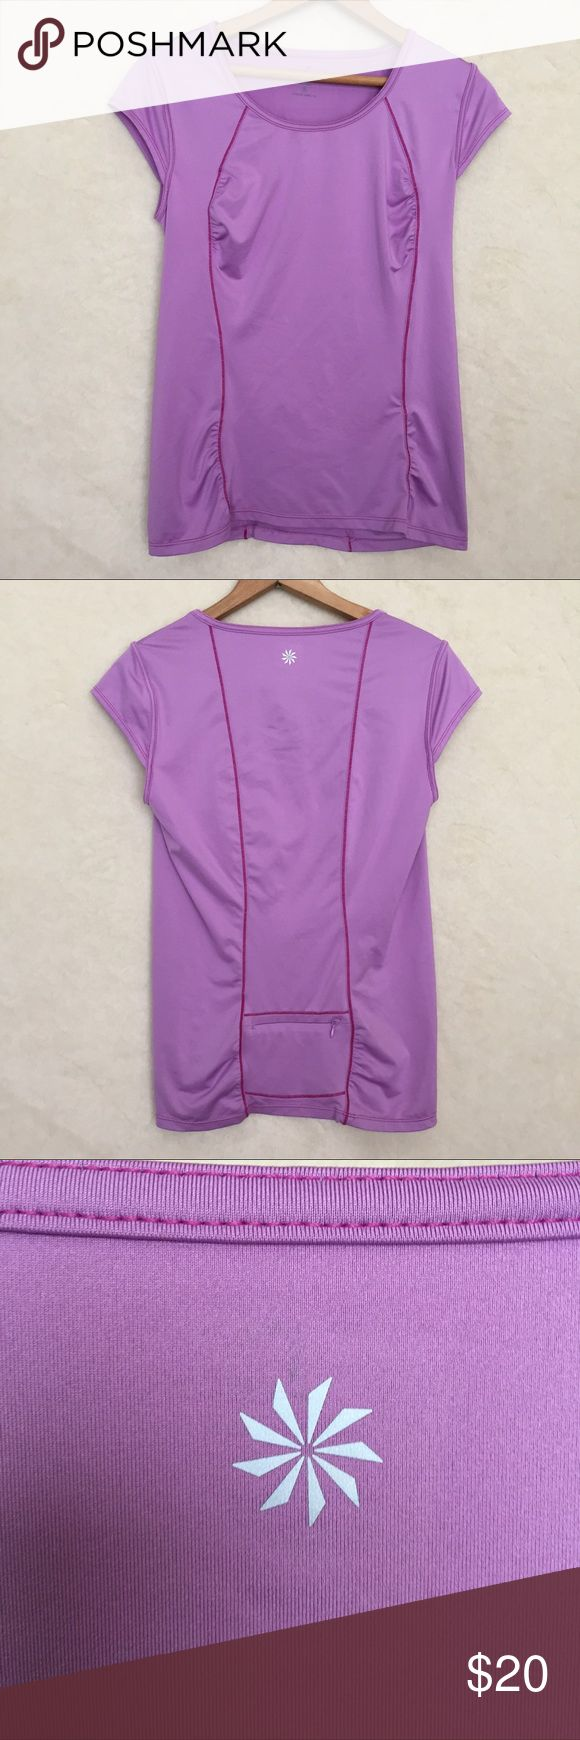 Athleta work out t-shirt sz s Athleta work out purple tee shirt with zippered pocket on back of shirt . Sz S Athleta Tops Tees - Short Sleeve